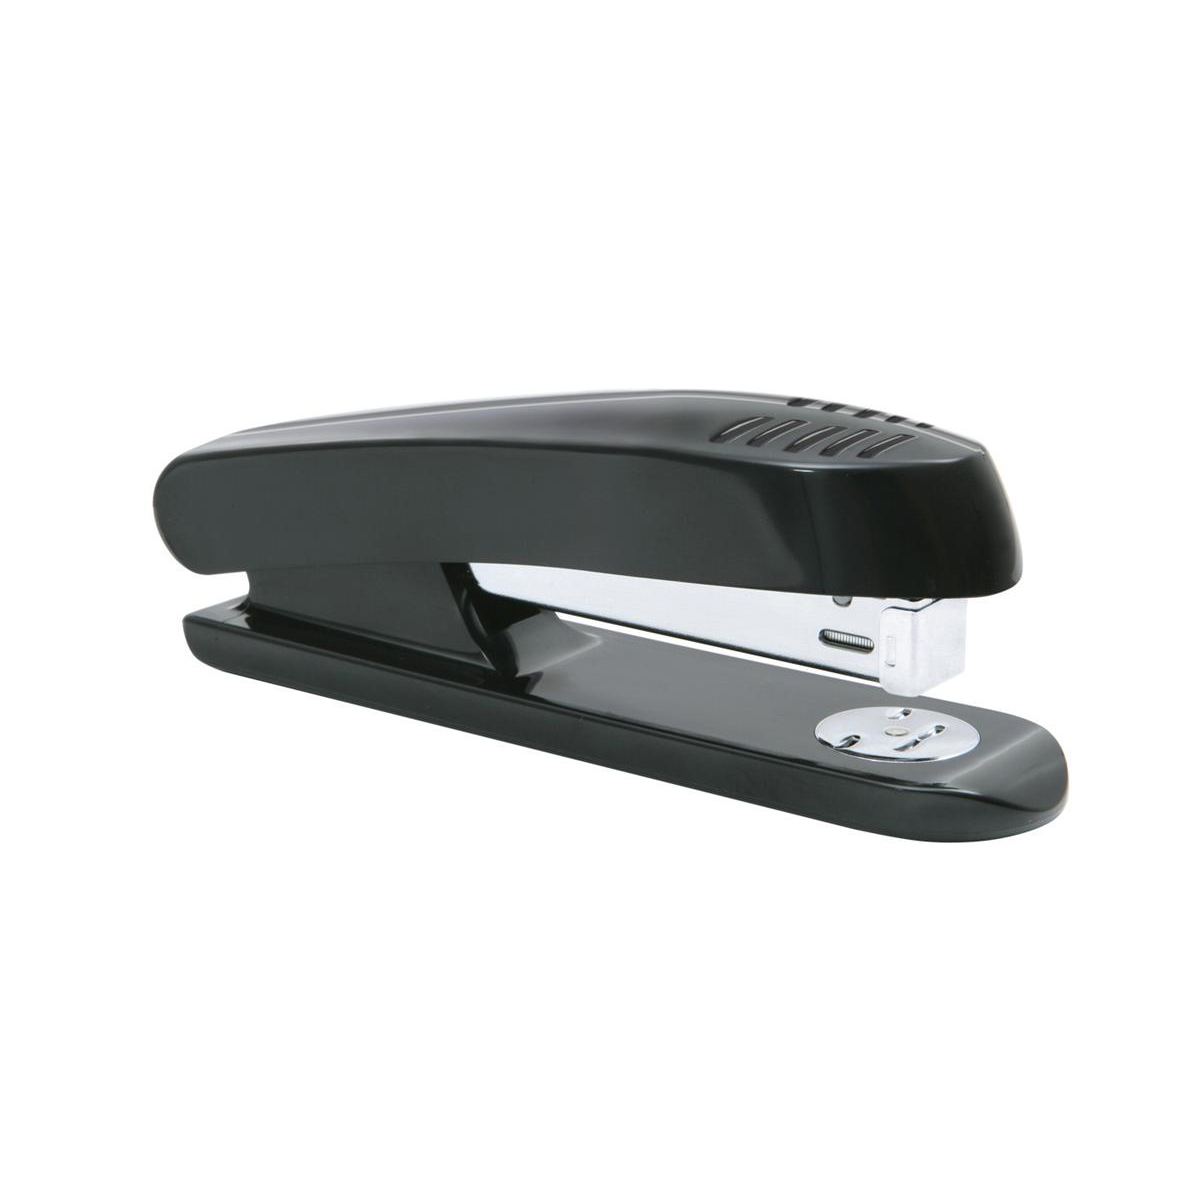 Desktop Staplers 5 Star Office Stapler Full Strip Plastic Capacity 20 Sheets Black